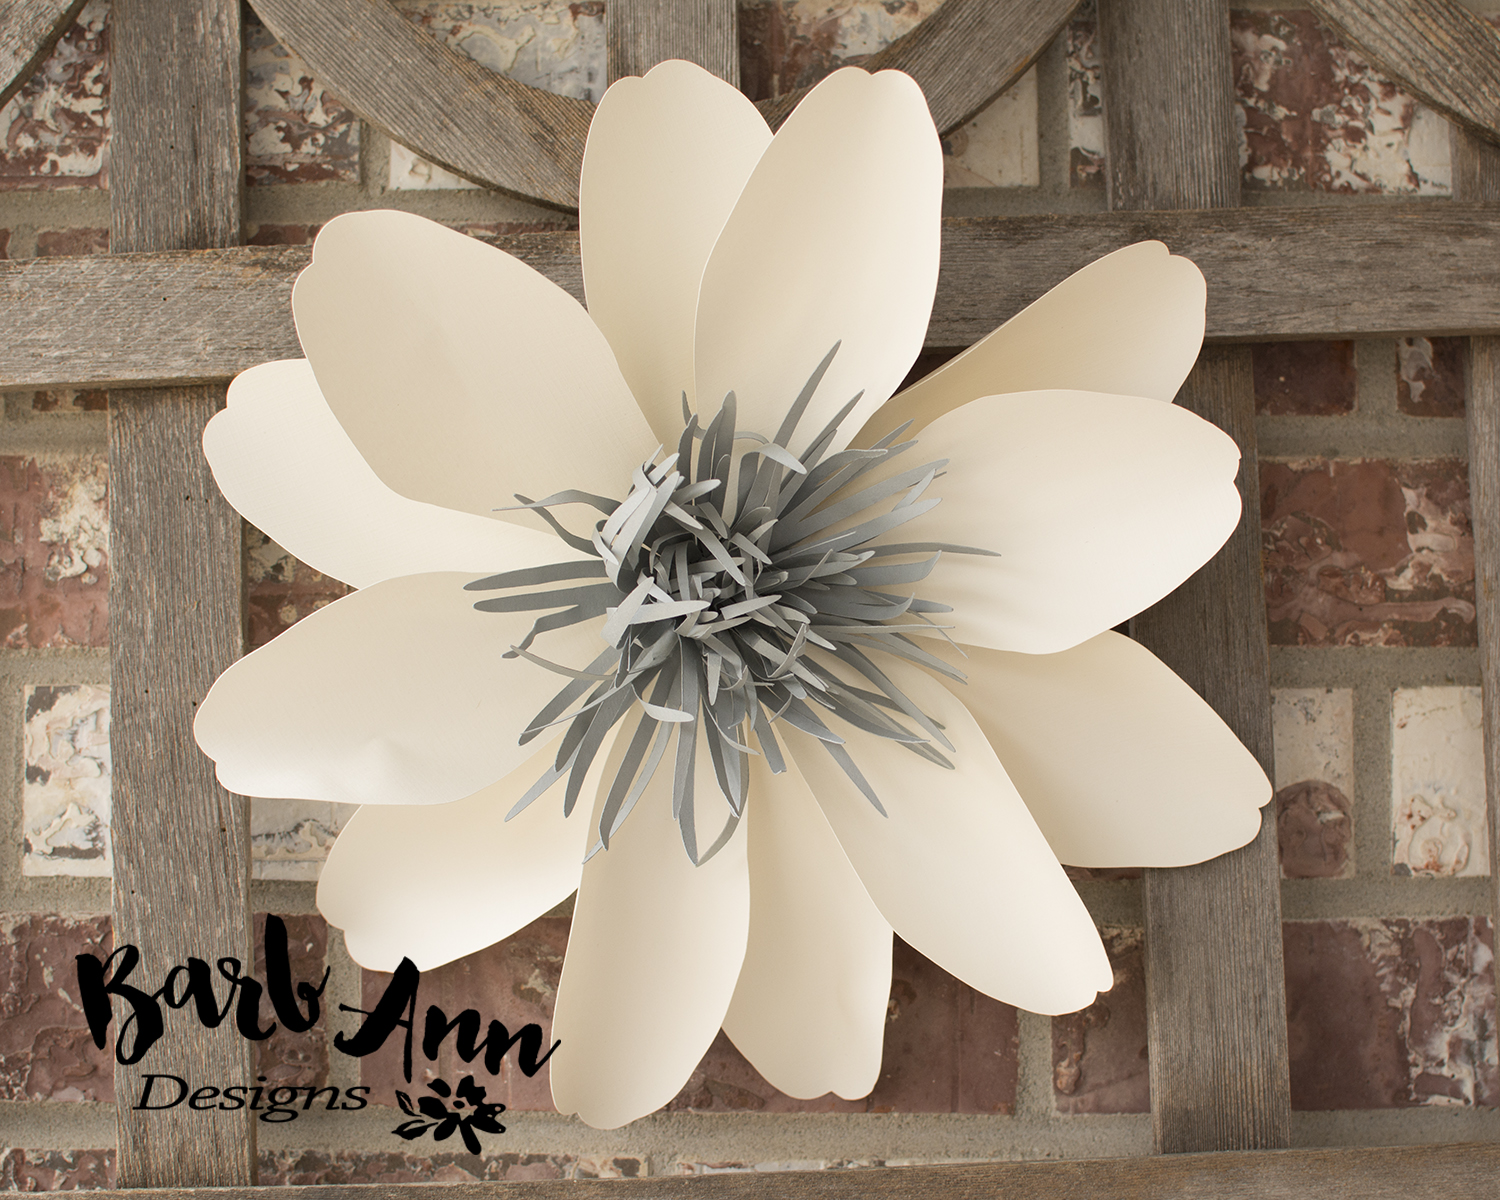 Eucalyptus gold cream large paper flower wall backdrop barb large spiked gray center white petal paper flower mightylinksfo Images